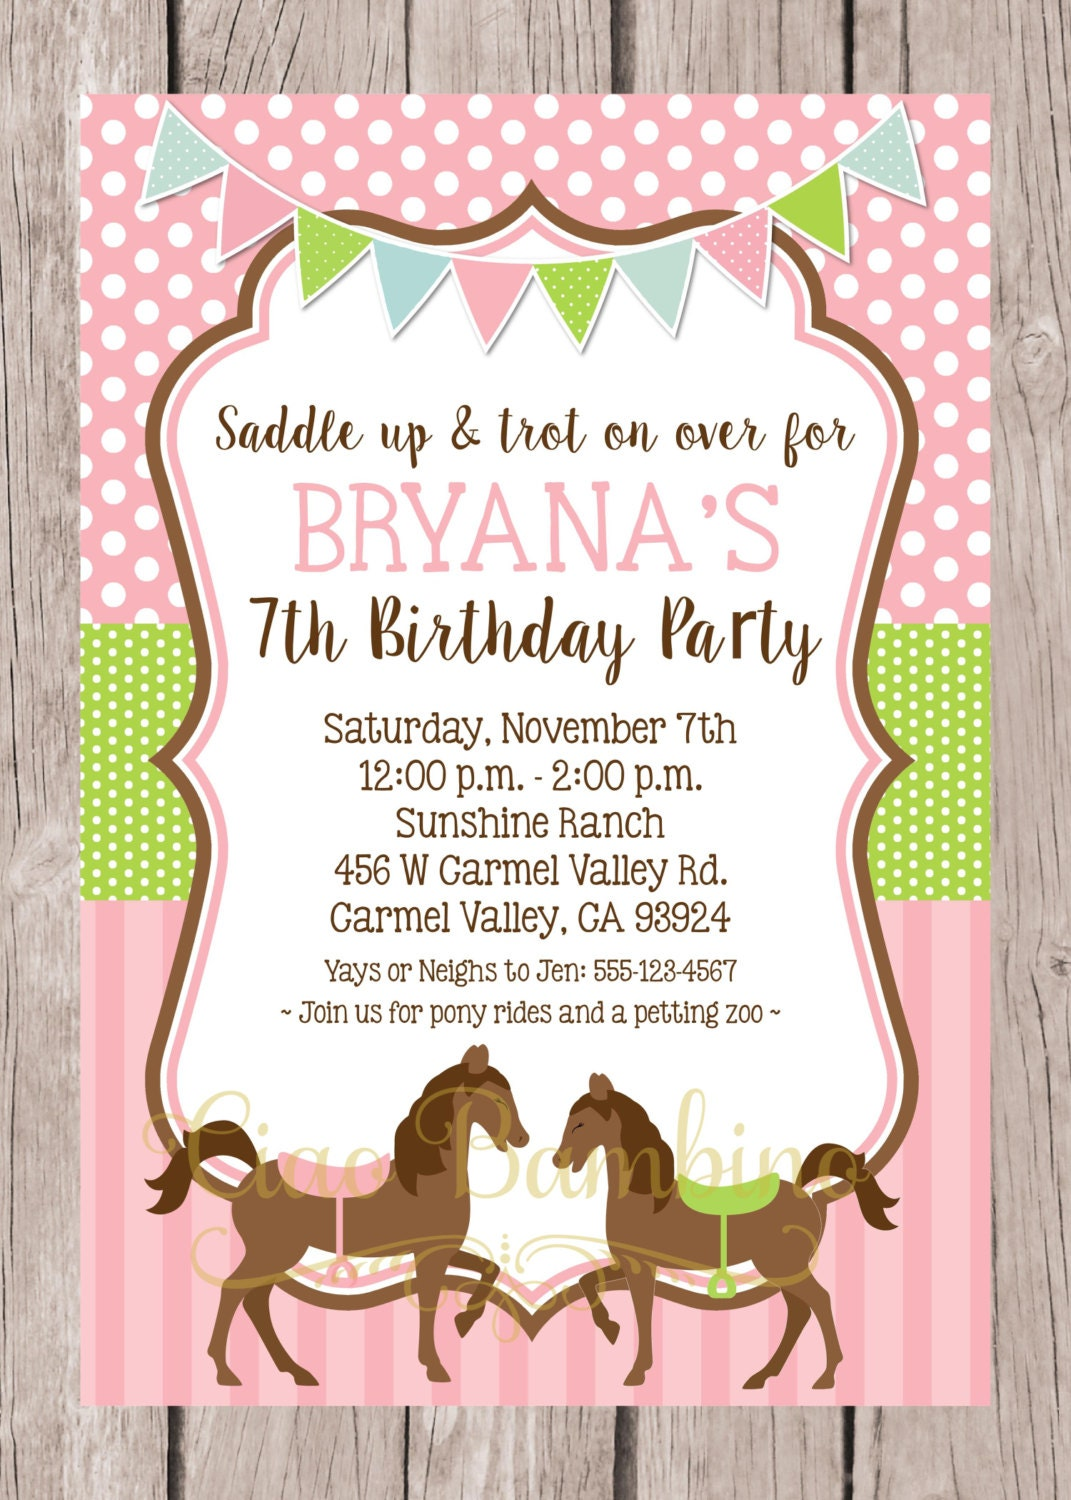 Refreshing image intended for horse birthday invitations free printable